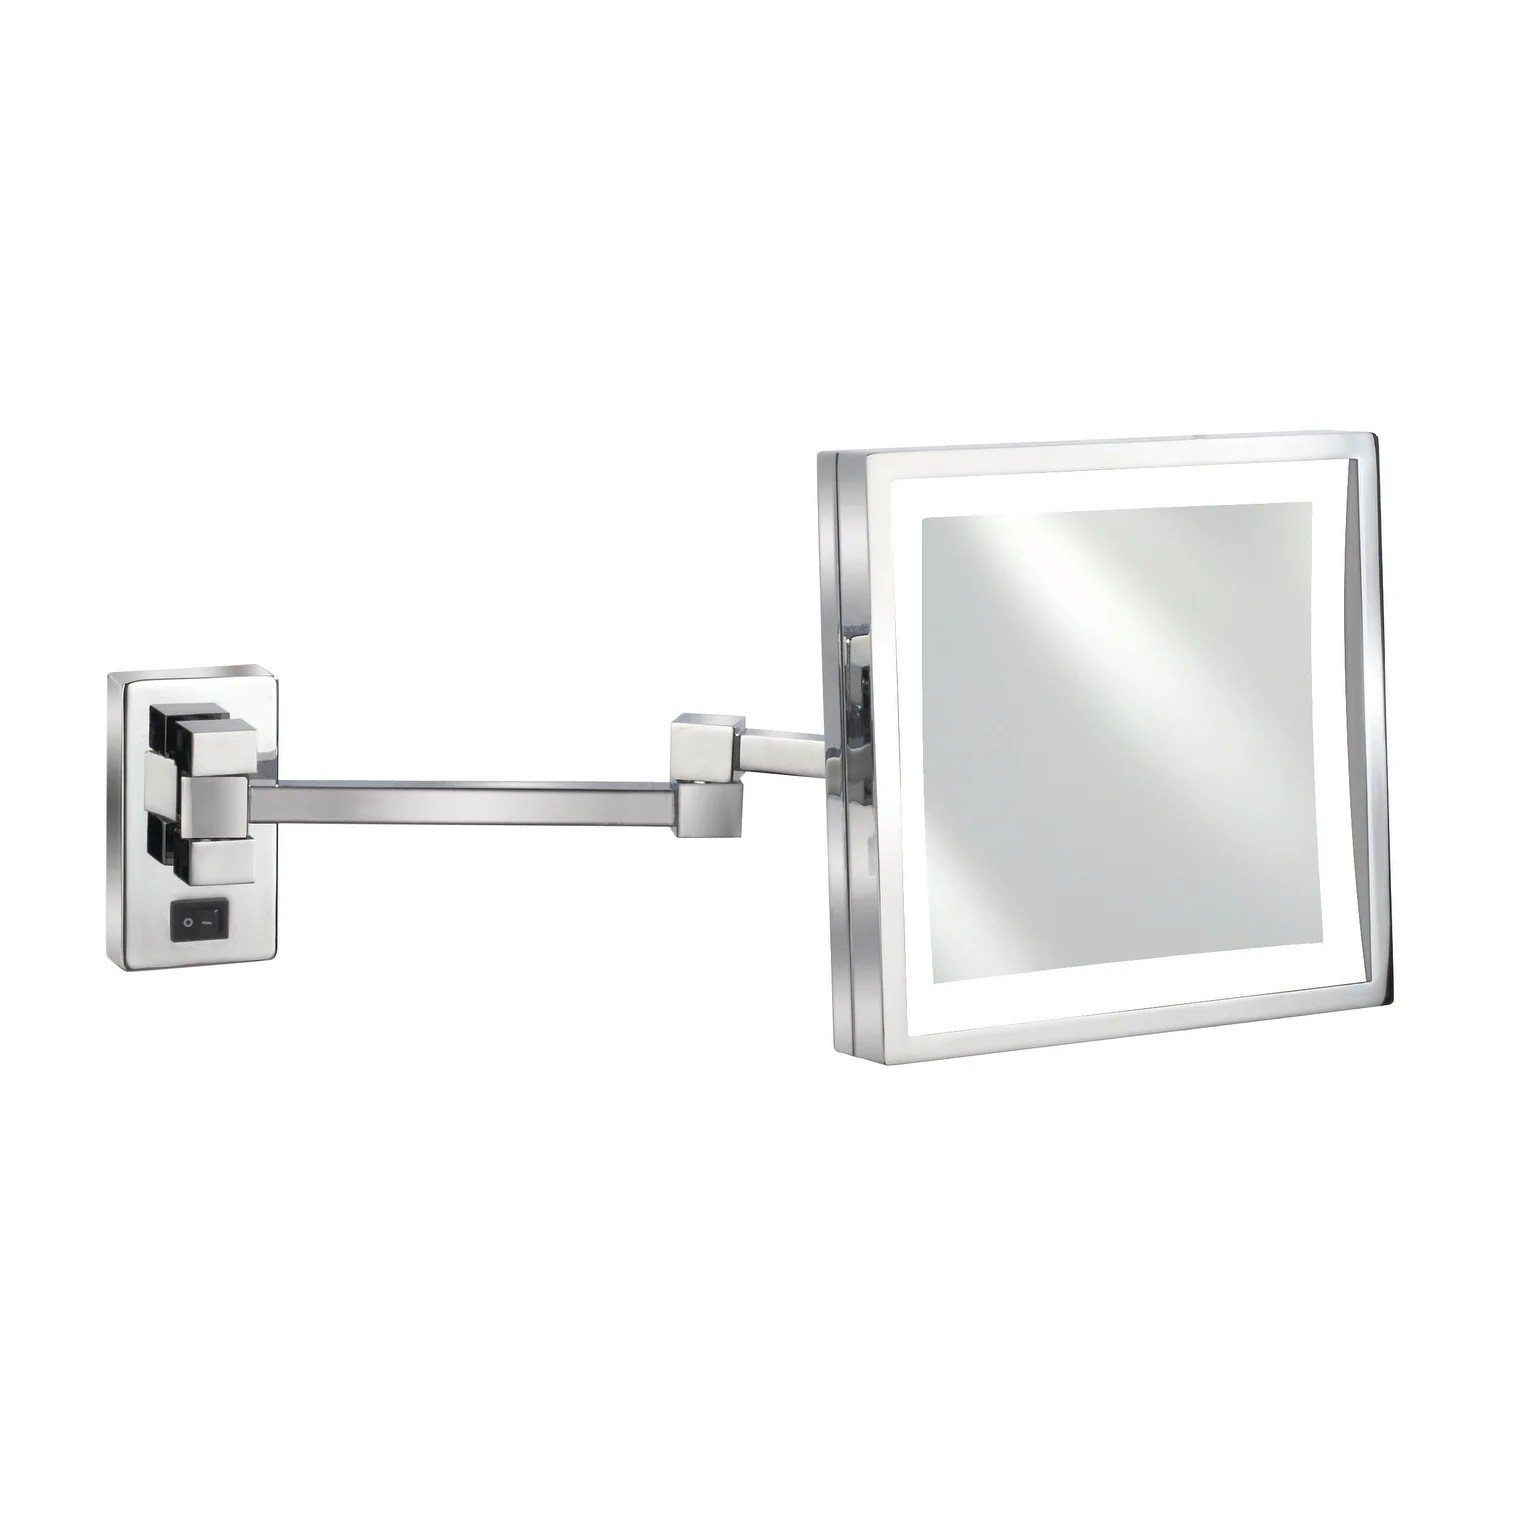 Shop Black Friday Deals On Empire 5x Magnification Wall Mount 8 X 8 Lighted Makeup Mirror Polished Chrome Overstock 18591378